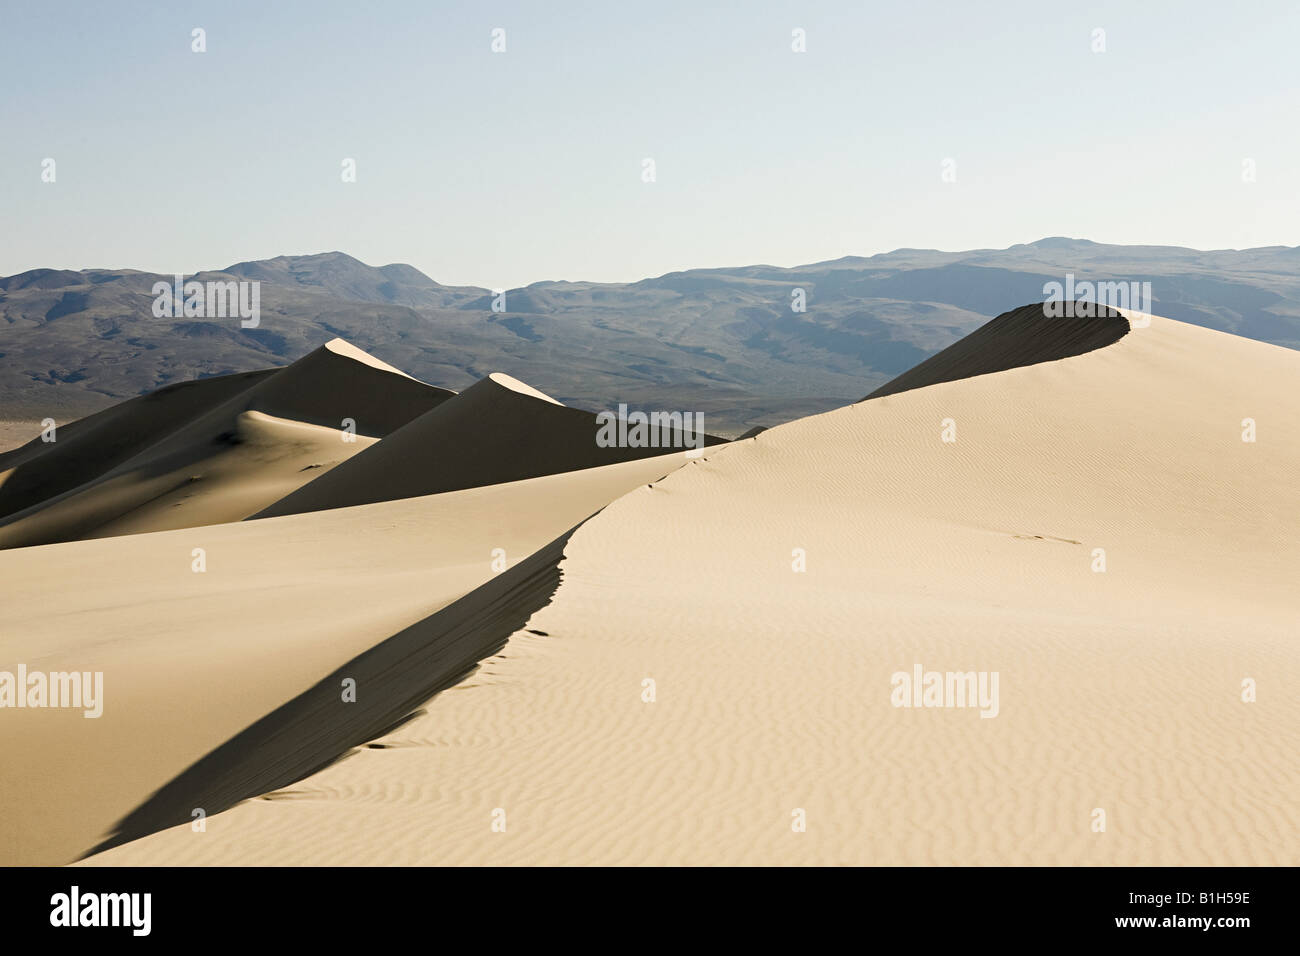 Sand dunes death valley national park - Stock Image